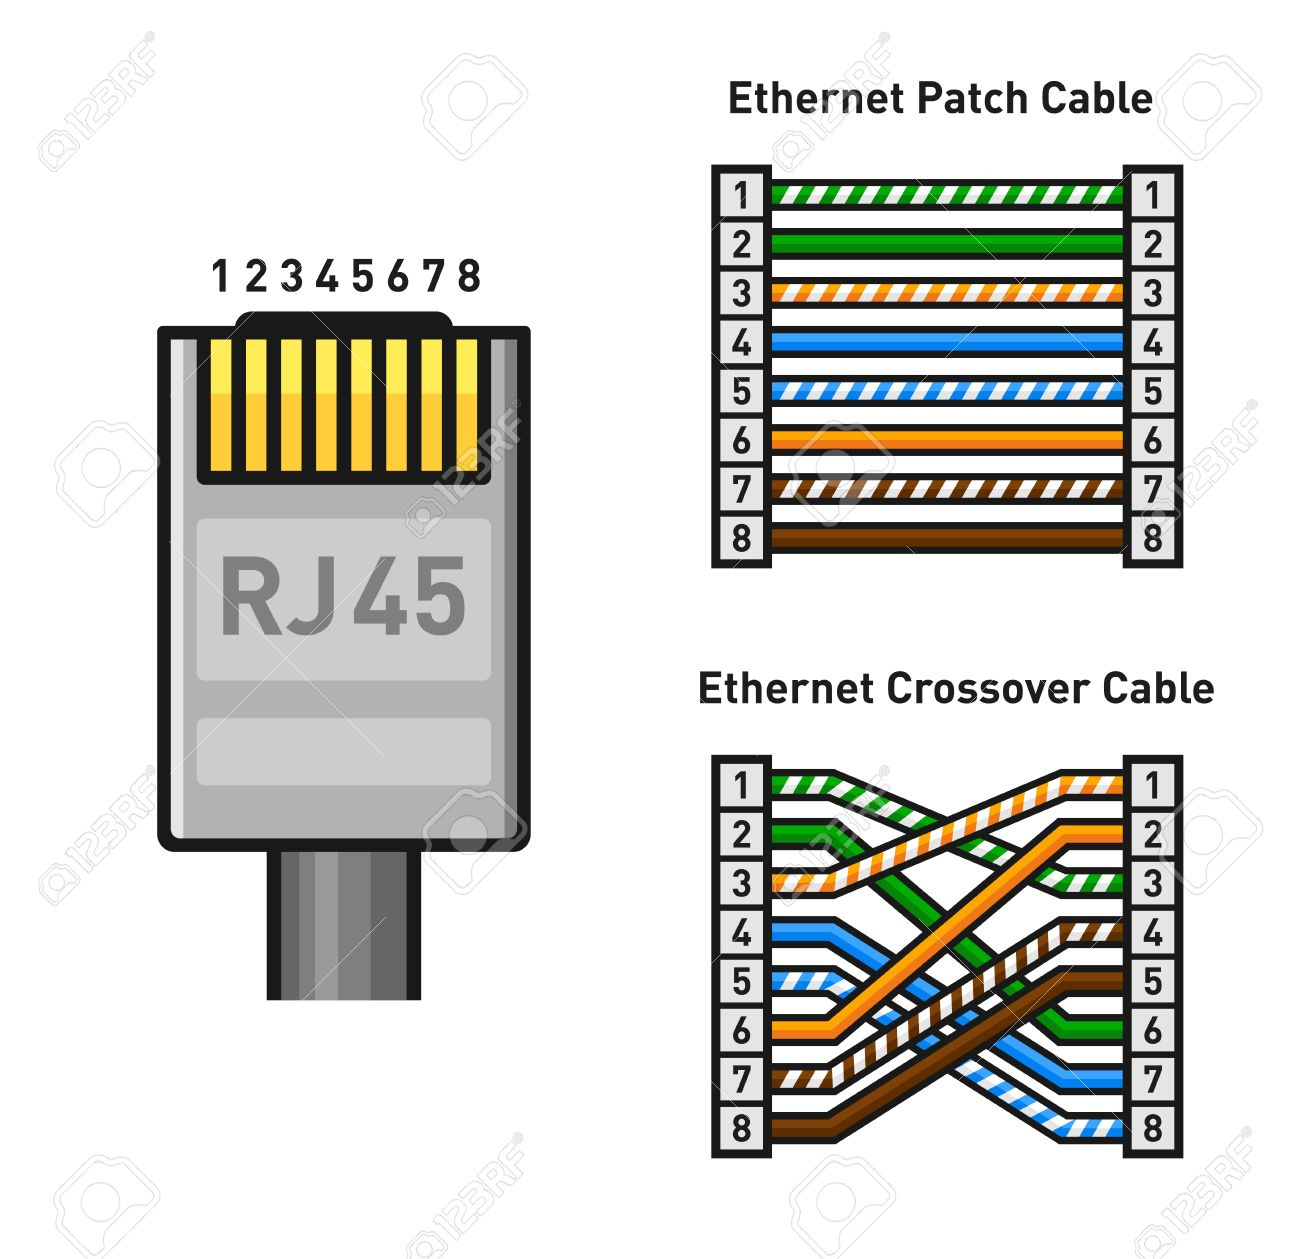 ethernet connector pinout color code straight and crossover rh 123rf com Ethernet Crossover Cable Wiring Diagram Ethernet Cable Wiring